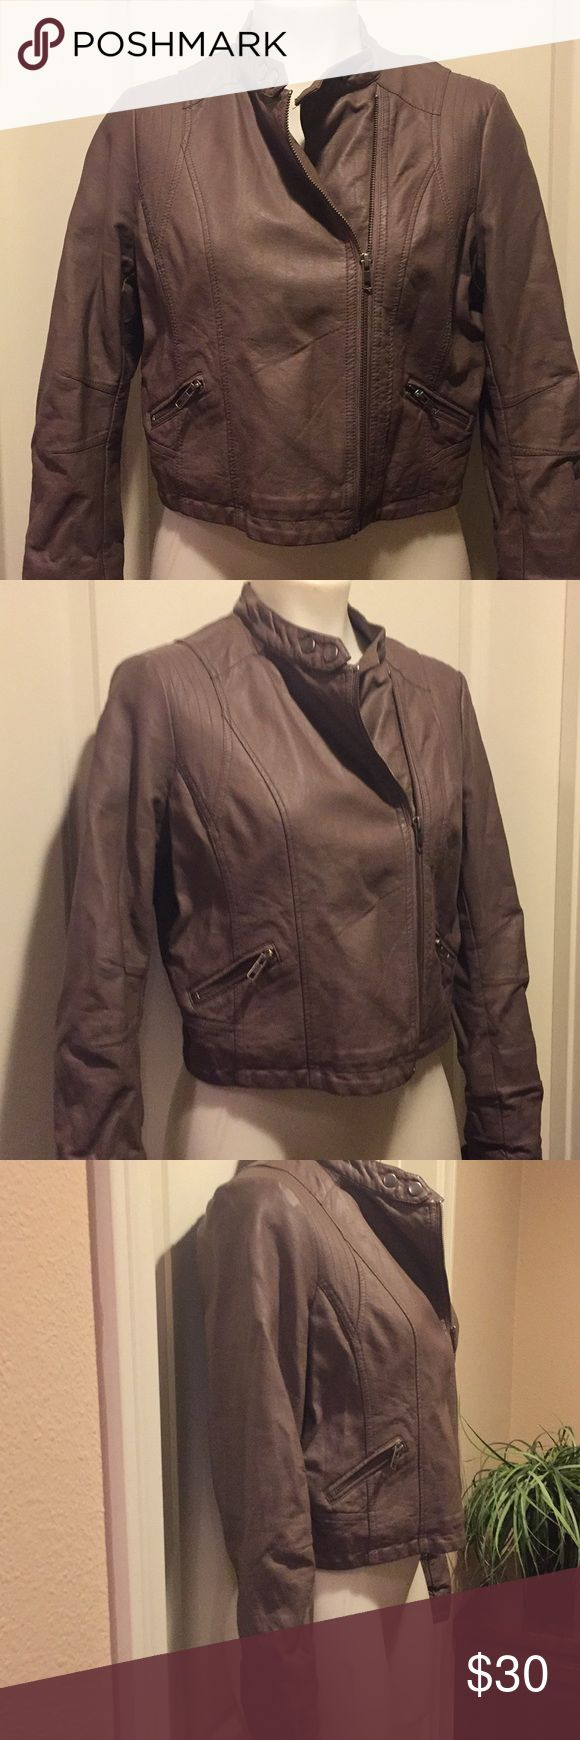 Laura Conrad Jacket🌟 Laura Conrad jacket in excellent condition. Fully lined and super cute, thanks for looking 😊 LC Lauren Conrad Jackets & Coats